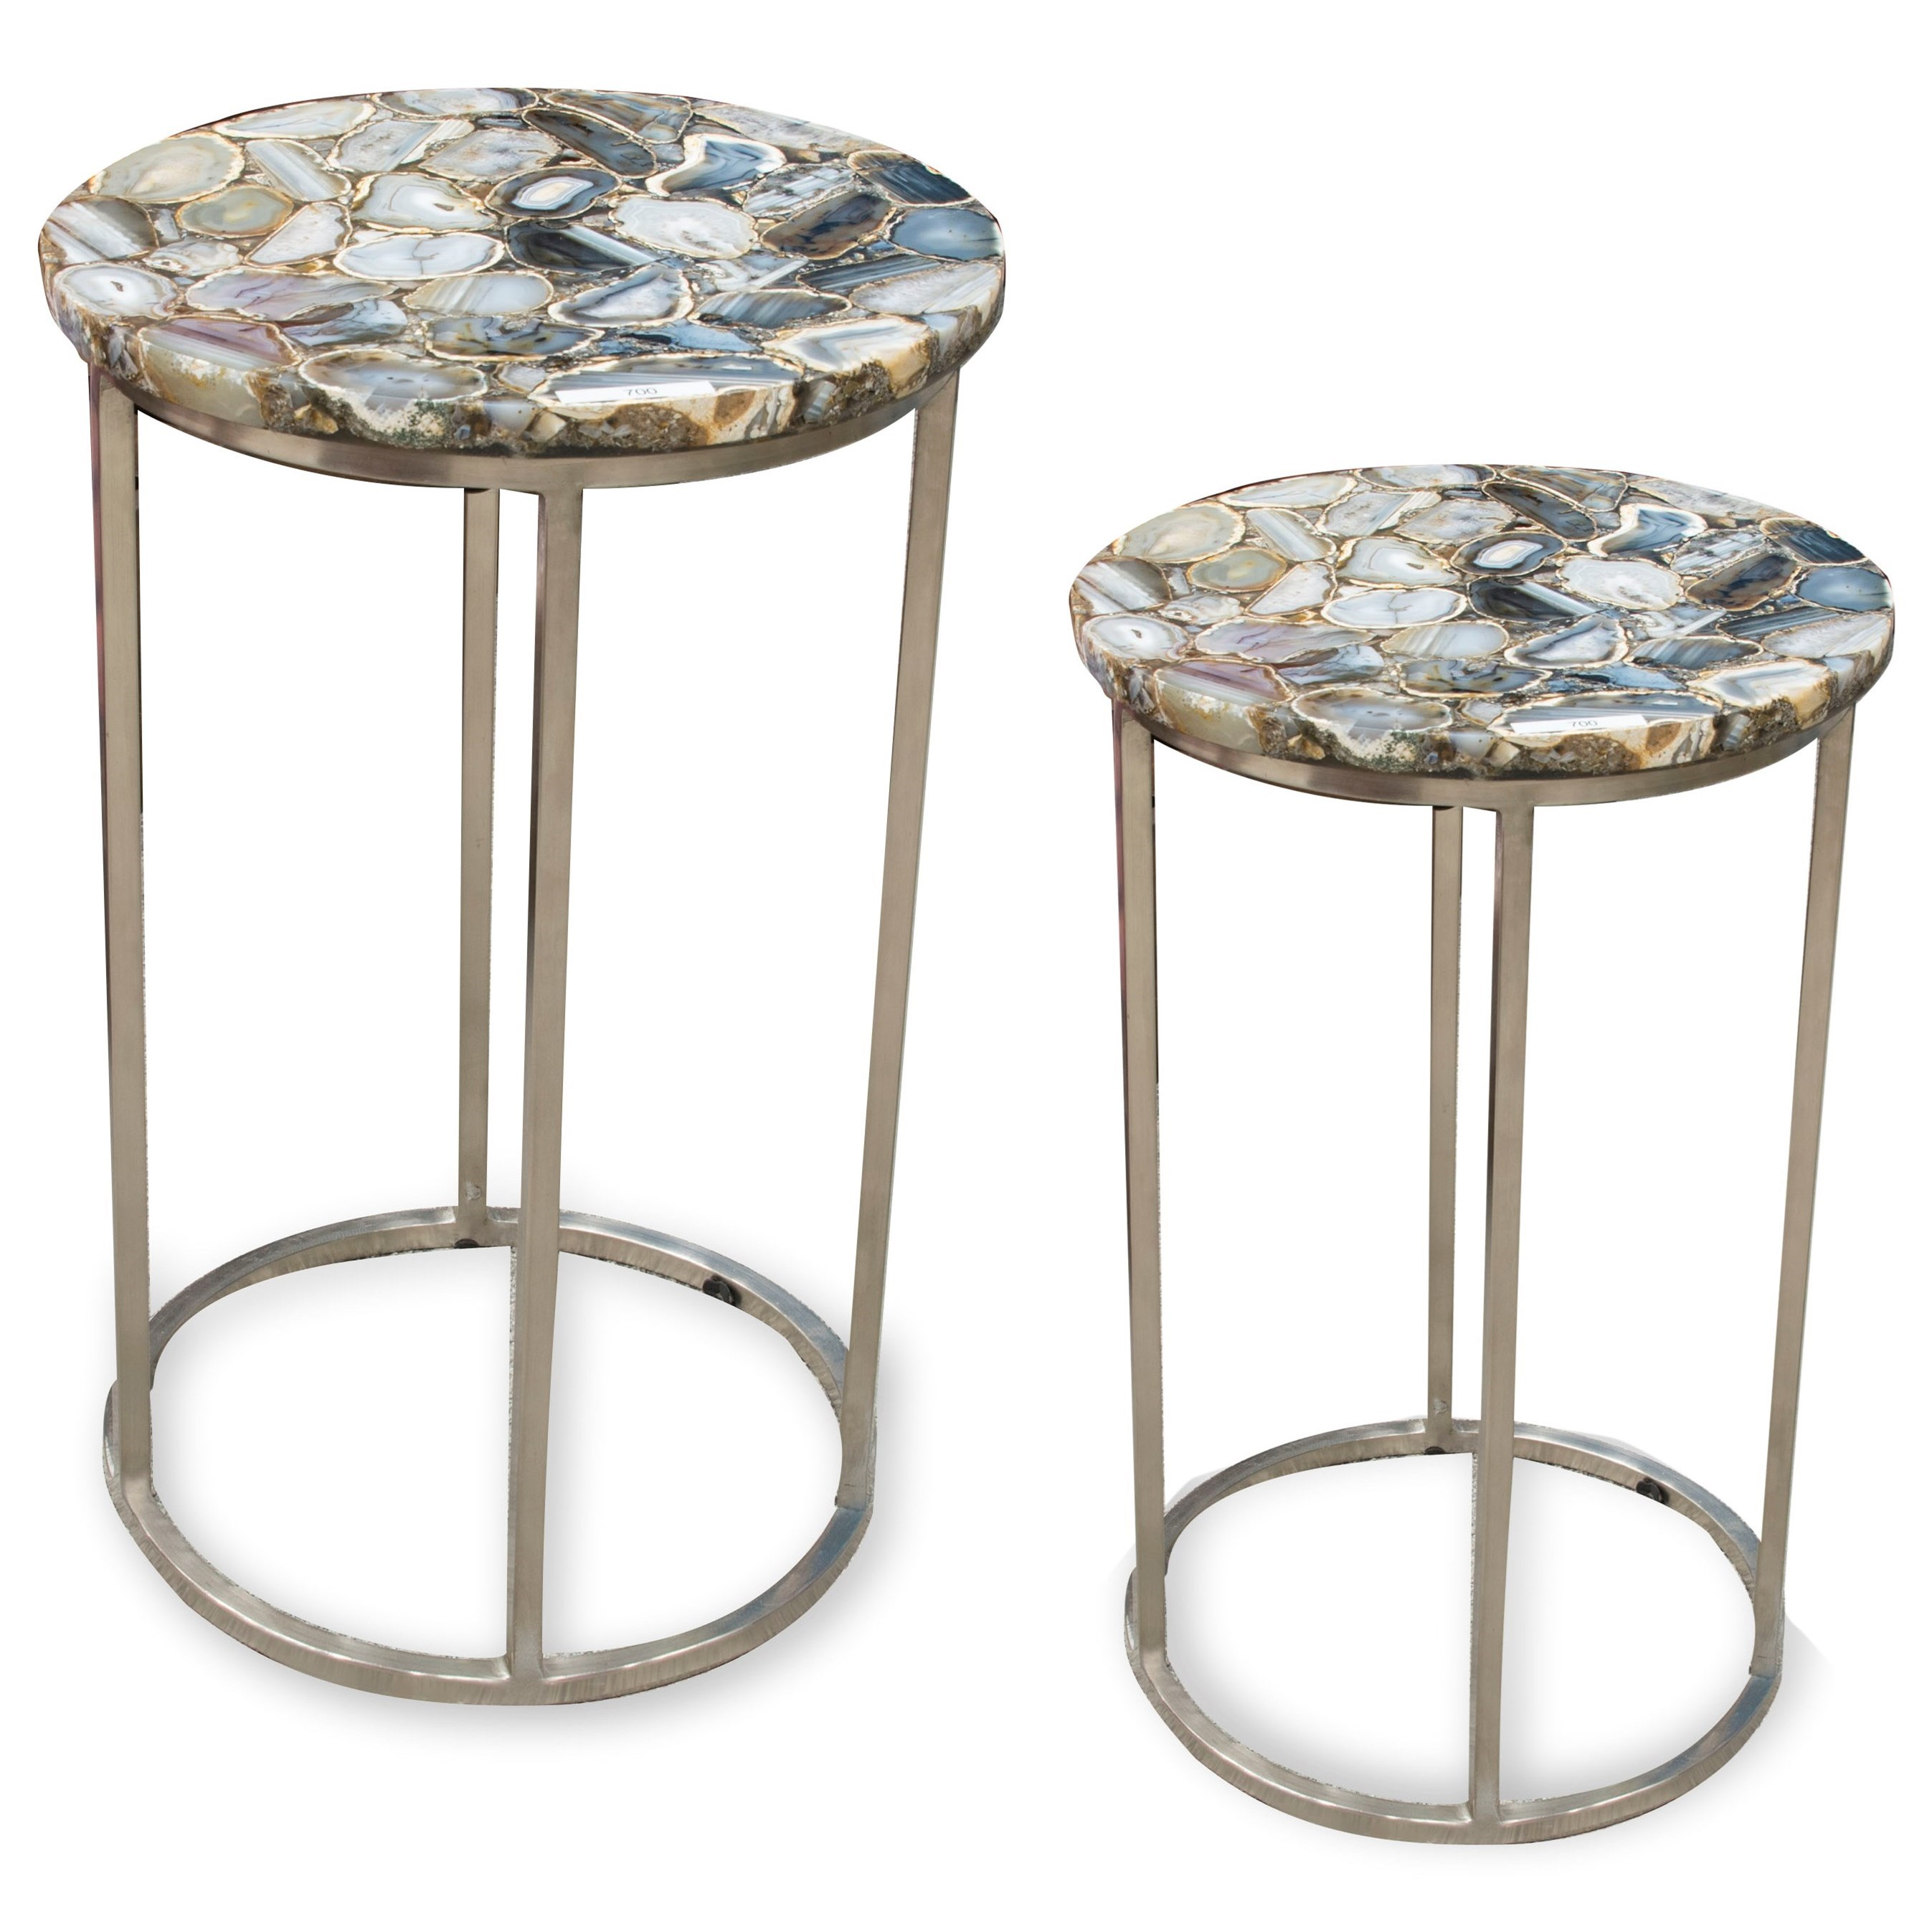 Onyx Agate Top Nesting Table by Steve Silver at Northeast Factory Direct